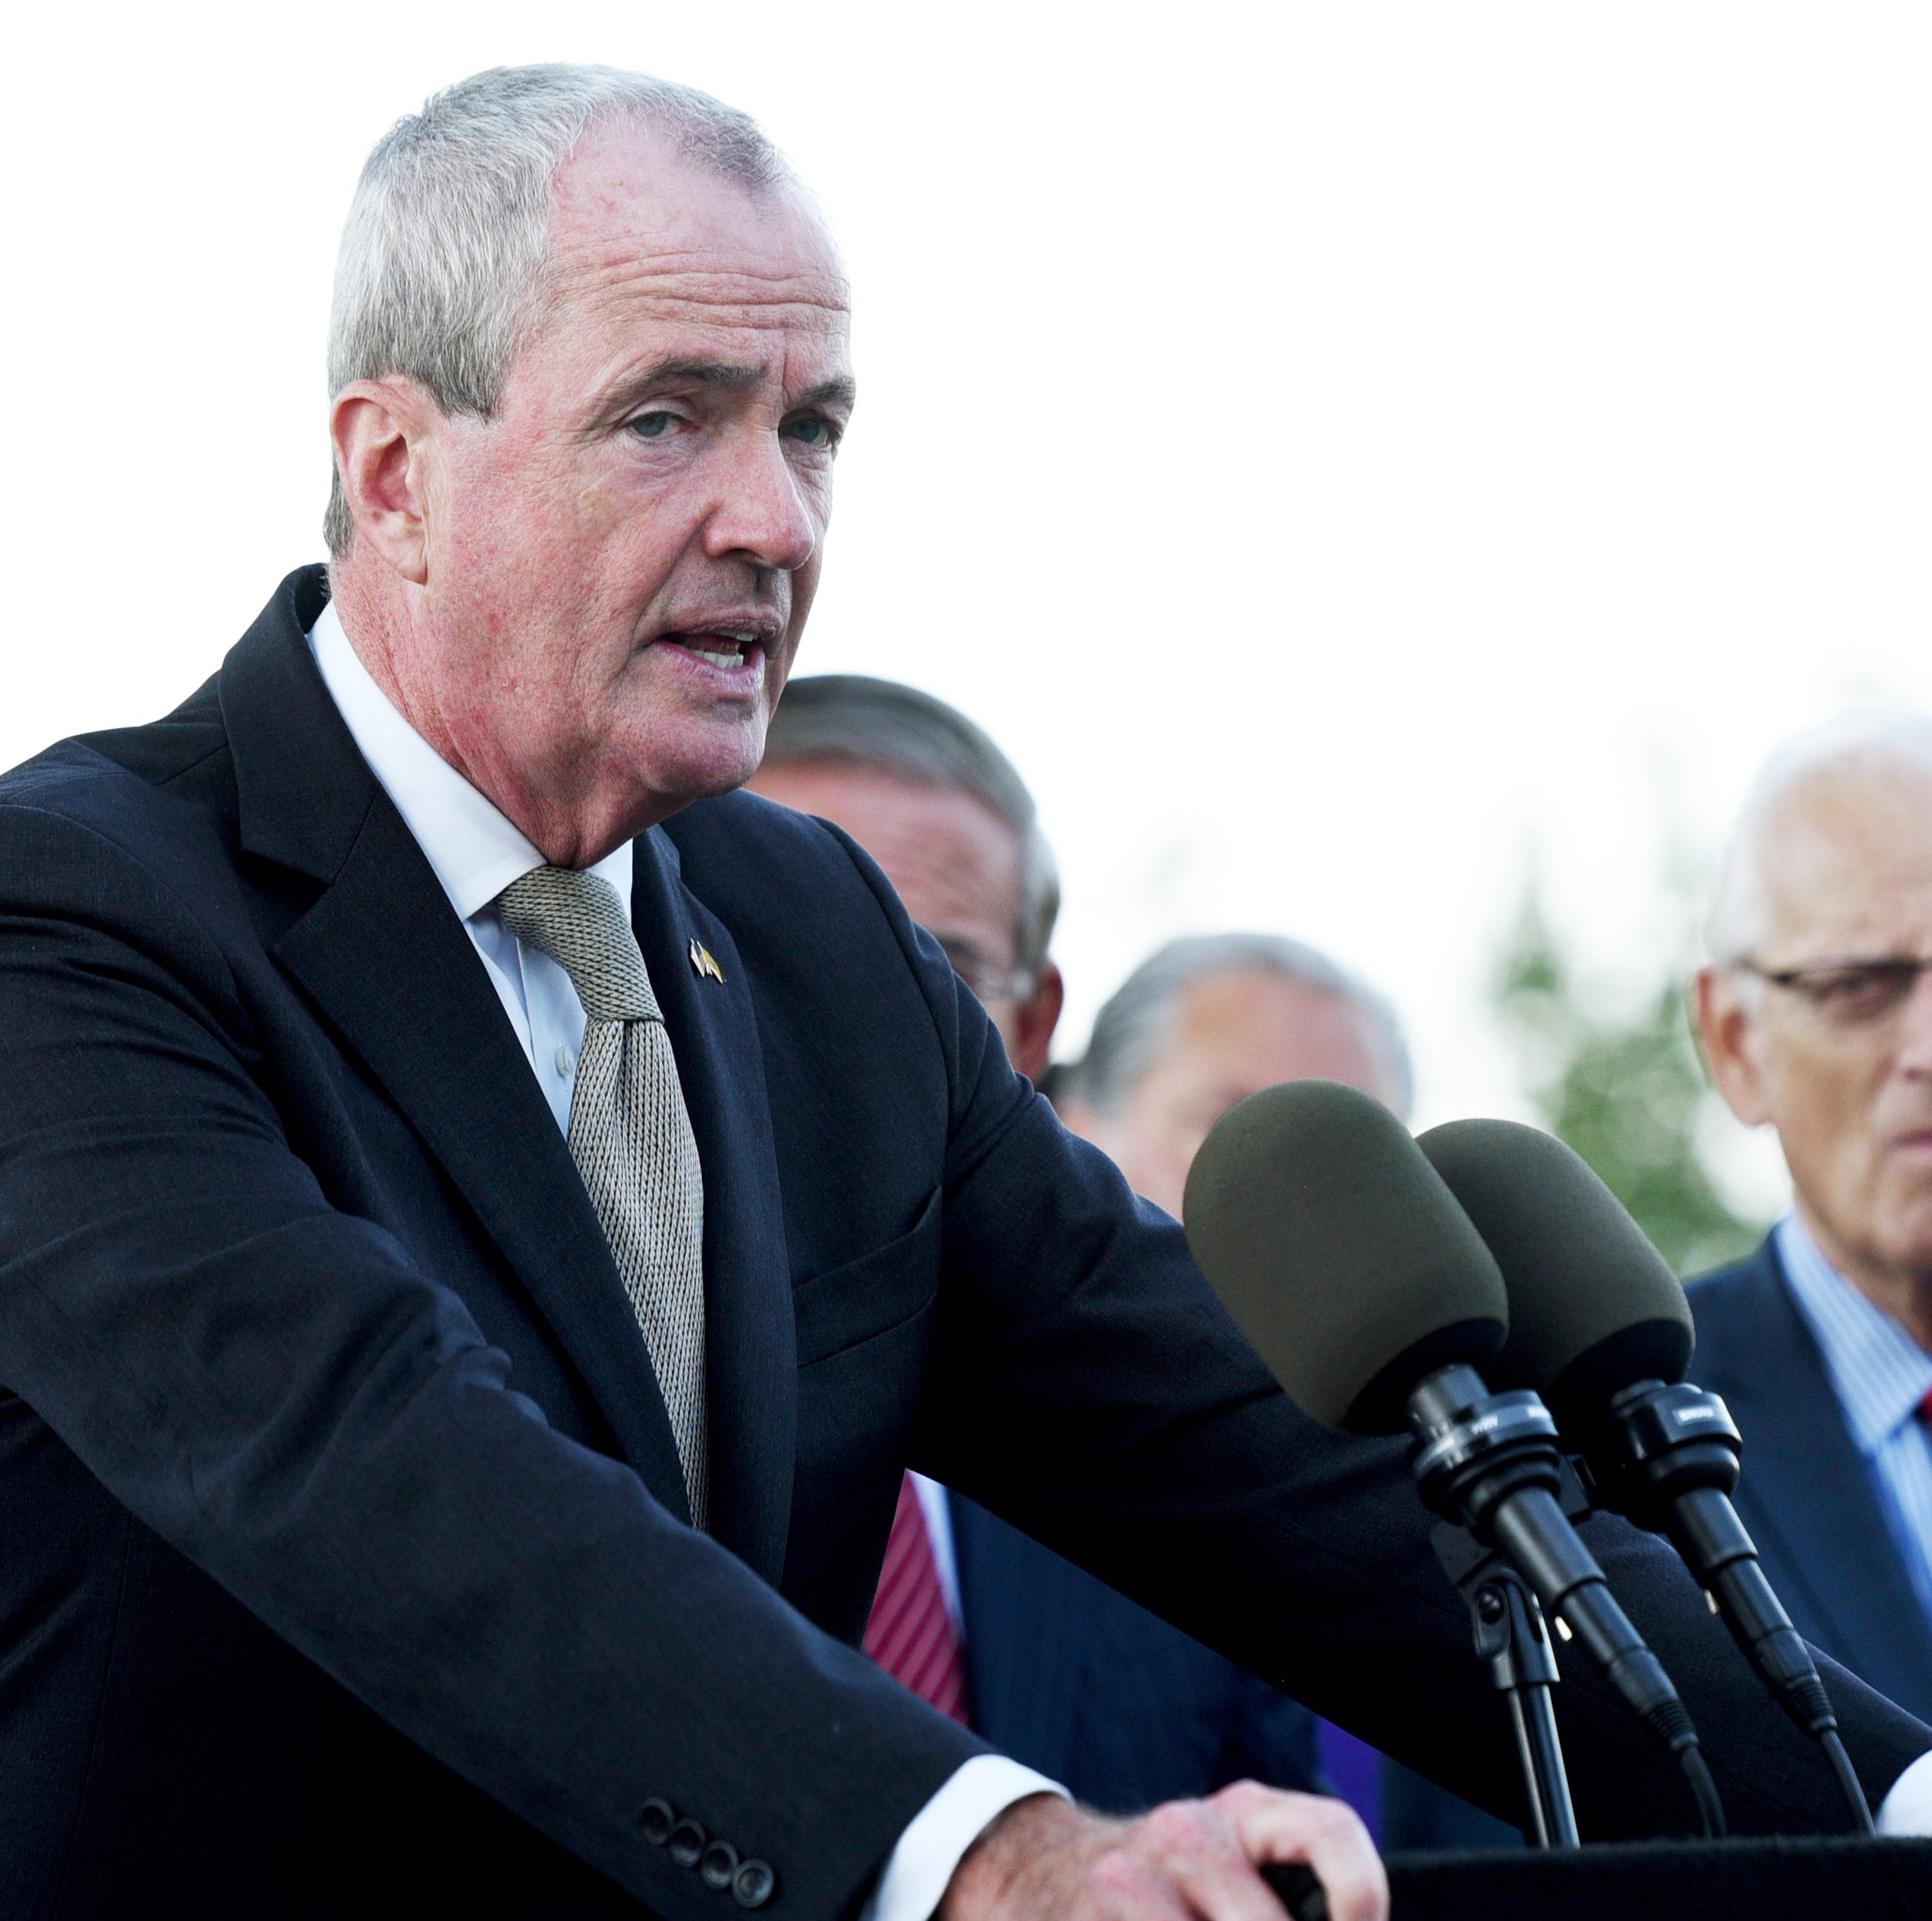 Another Murphy staffer leaves. This time after questions over sexual misconduct claim